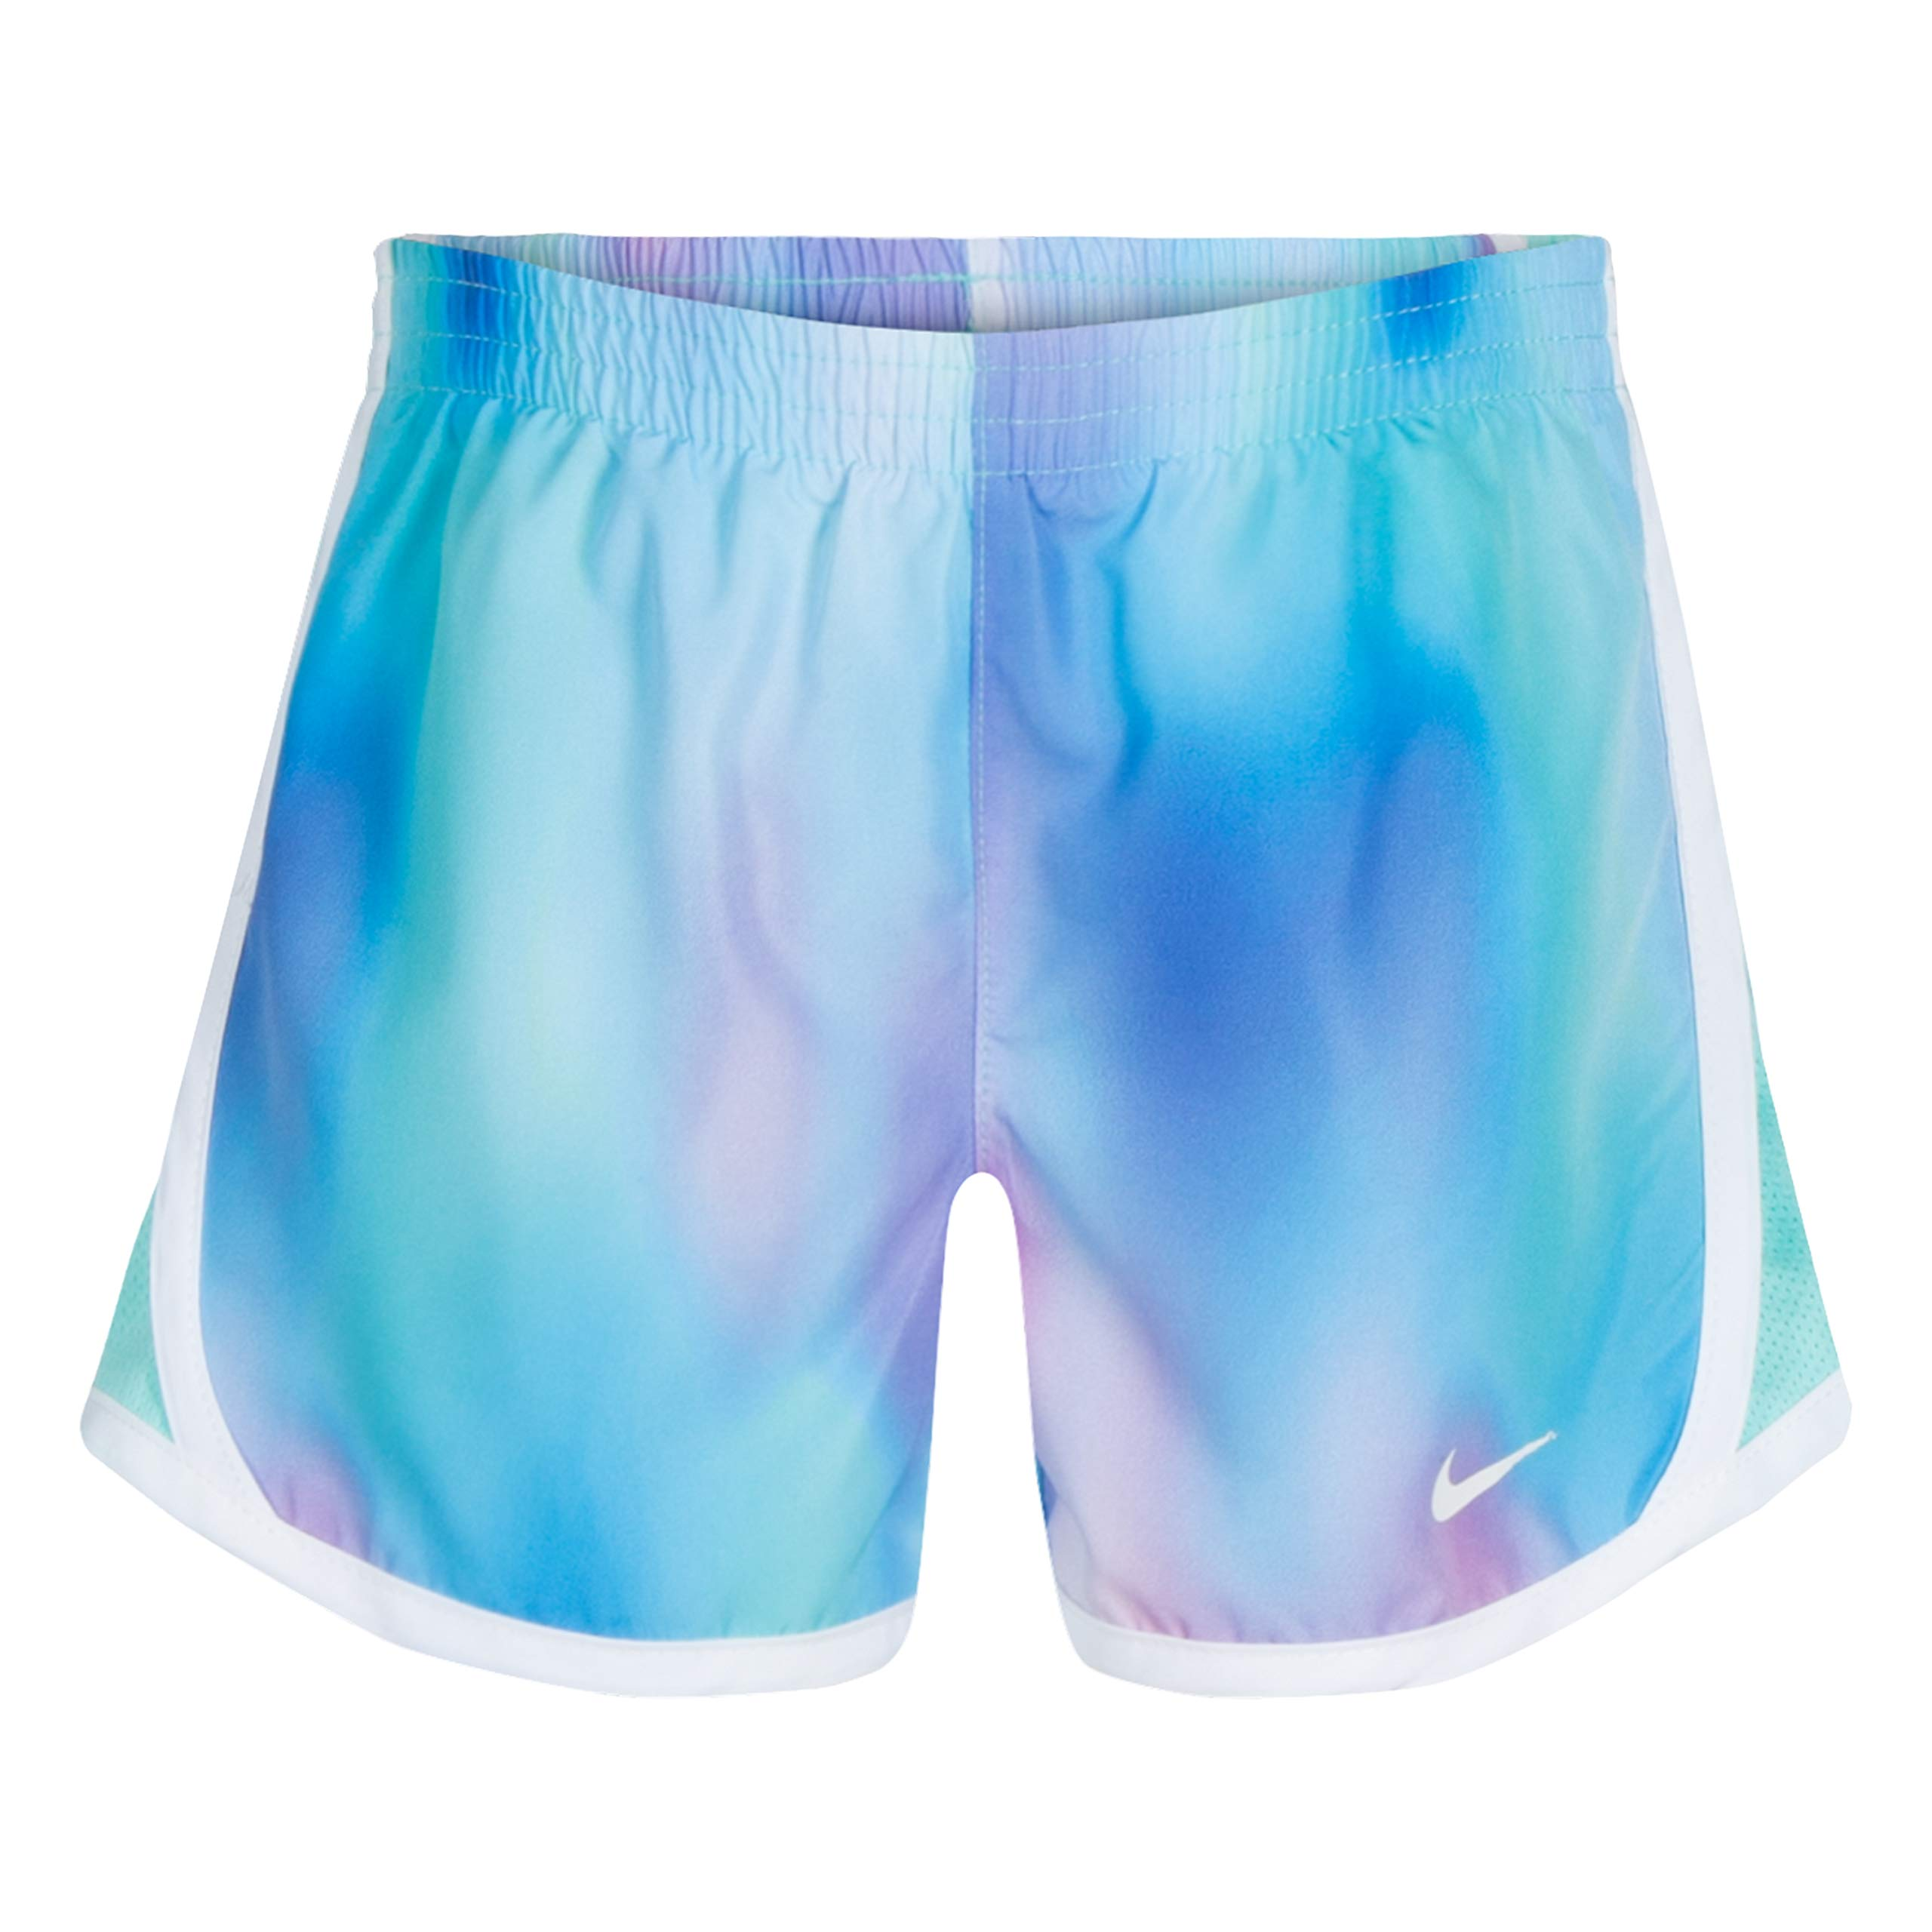 NIKE Children's Apparel Girls' Little Dri-FIT Tempo Shorts, Twilight Pulse, 6 by NIKE Children's Apparel